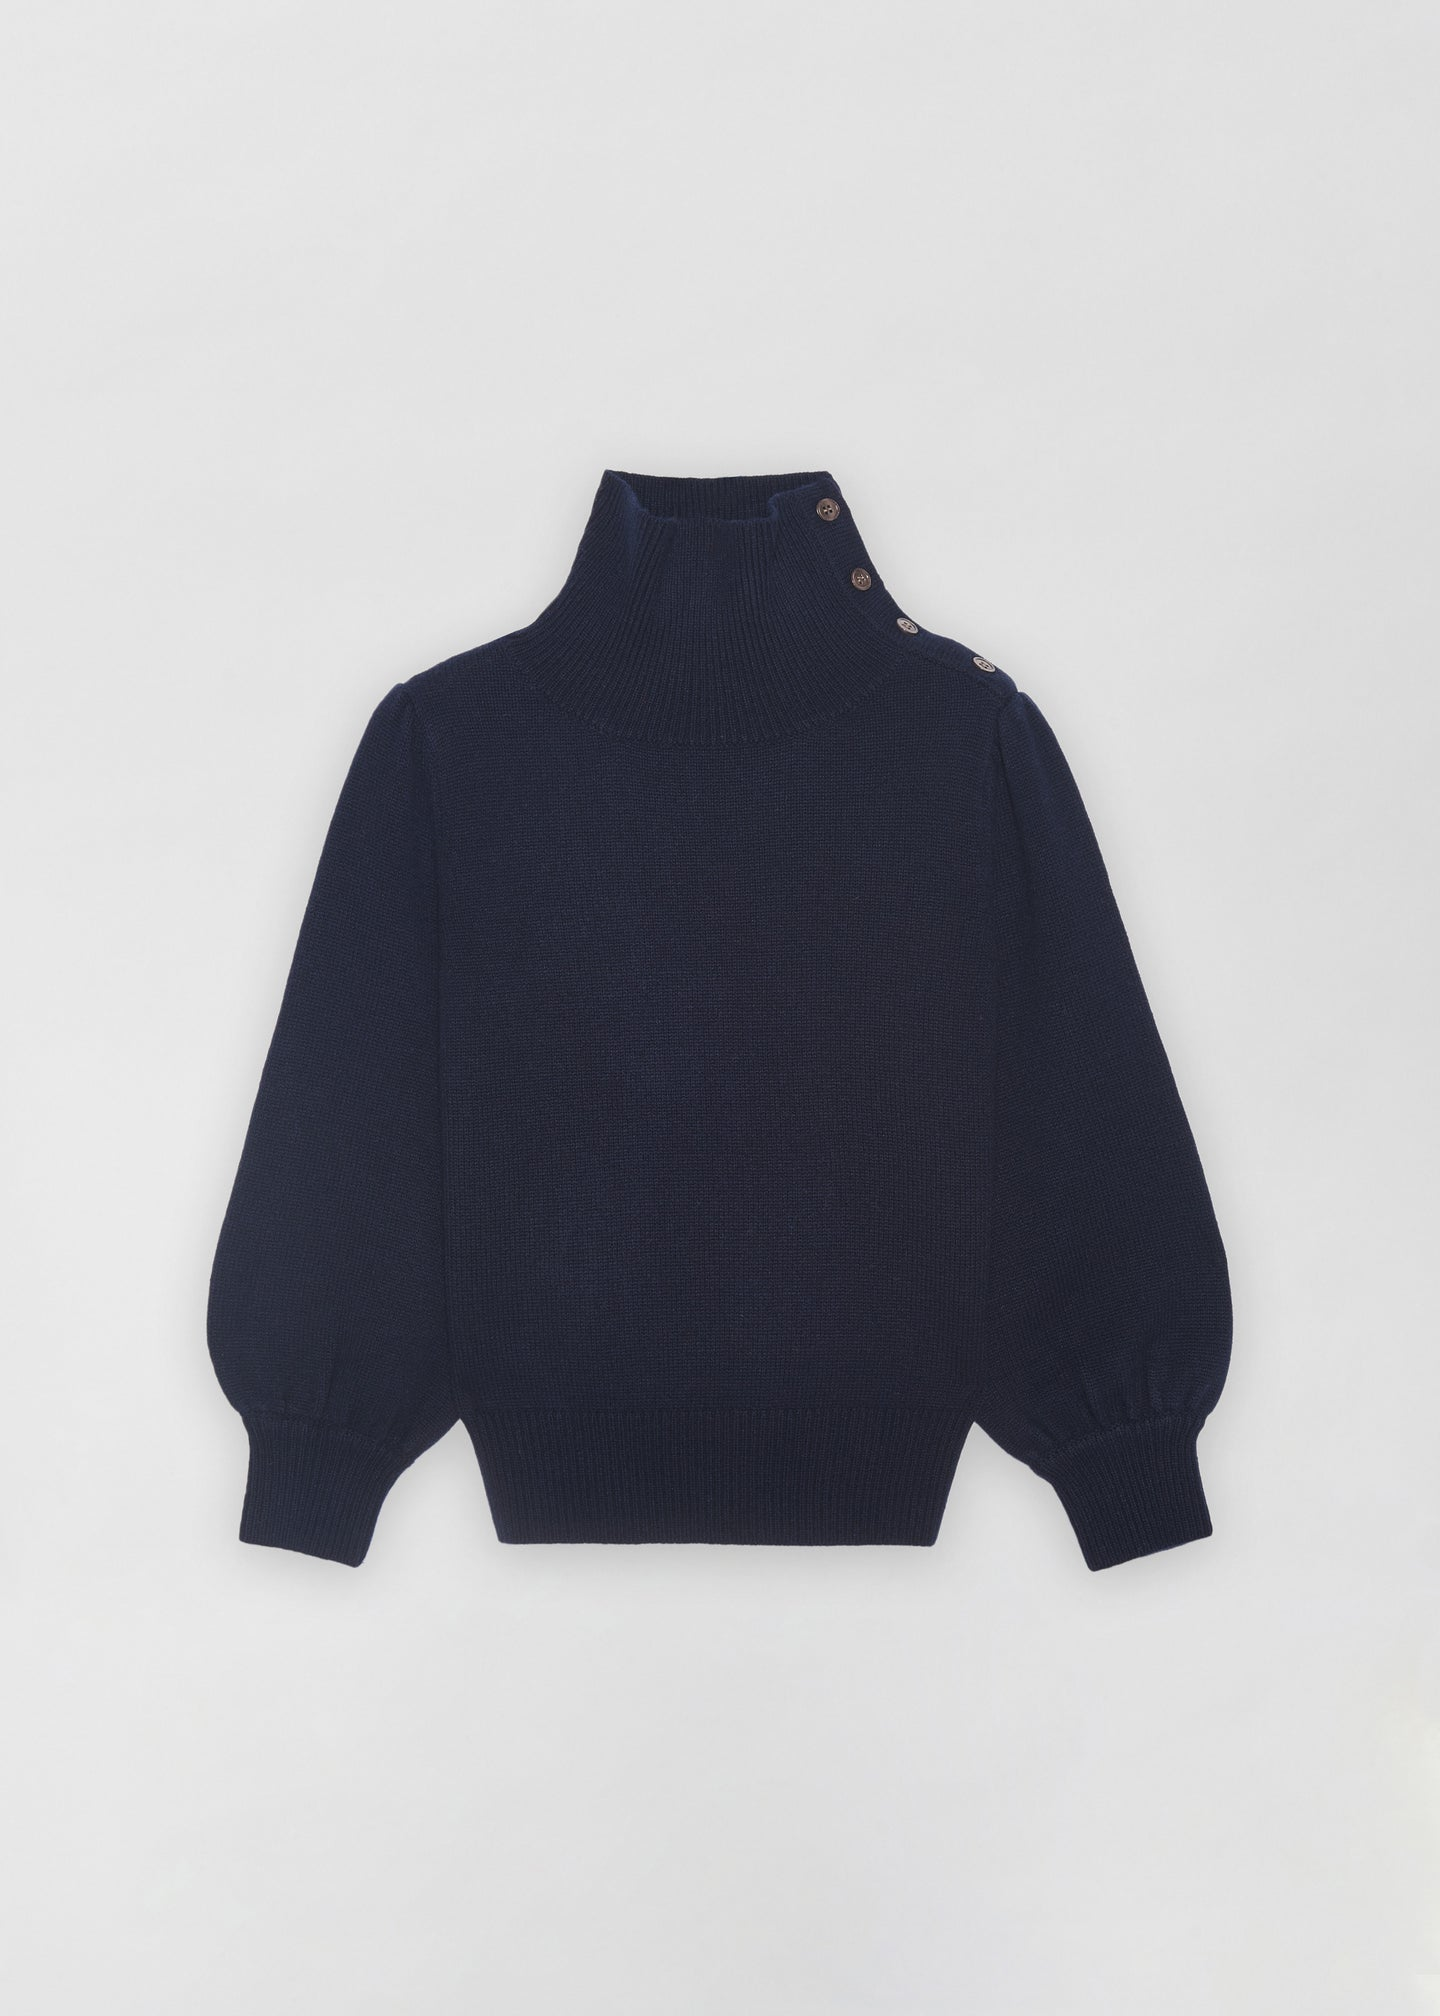 Button Shoulder Sweater - Navy - Co Collections